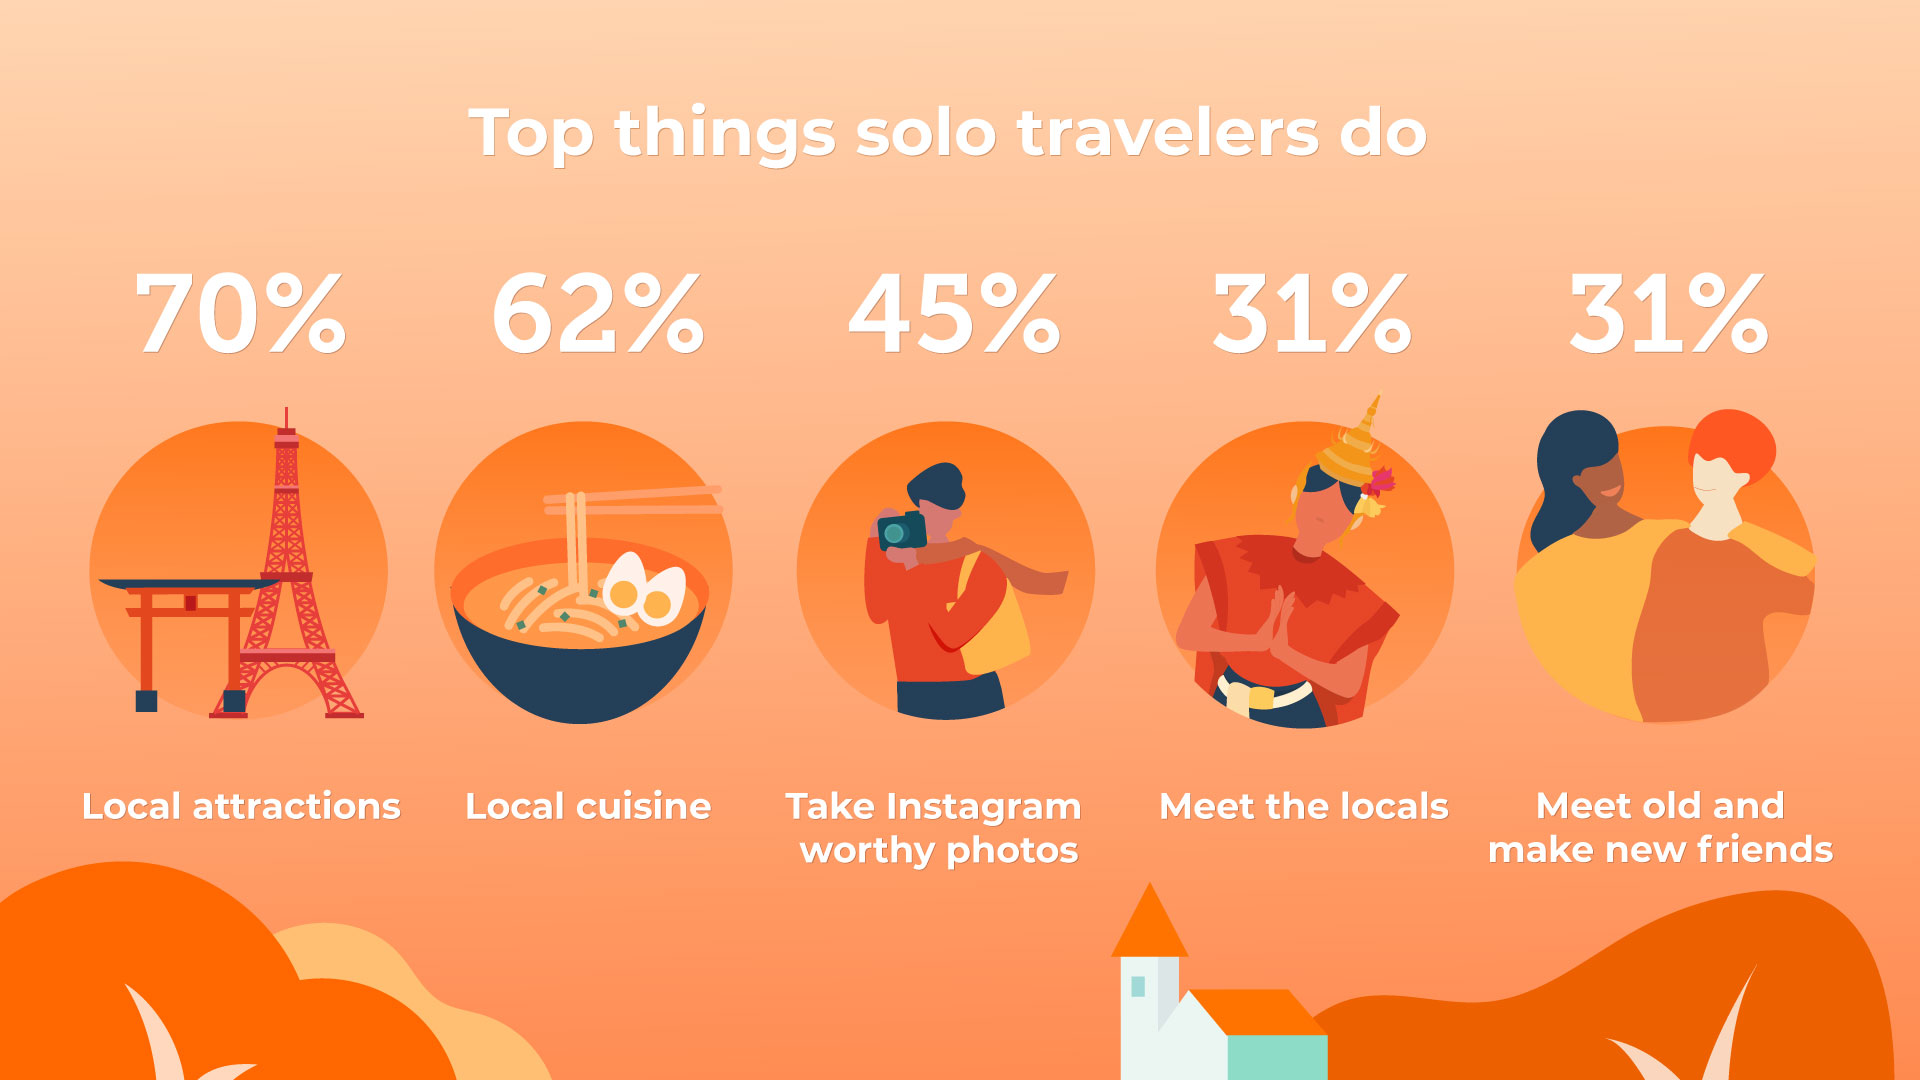 Klook's global solo traveller 2019 survey: Statistics on Malaysians' top things to do while travel solo